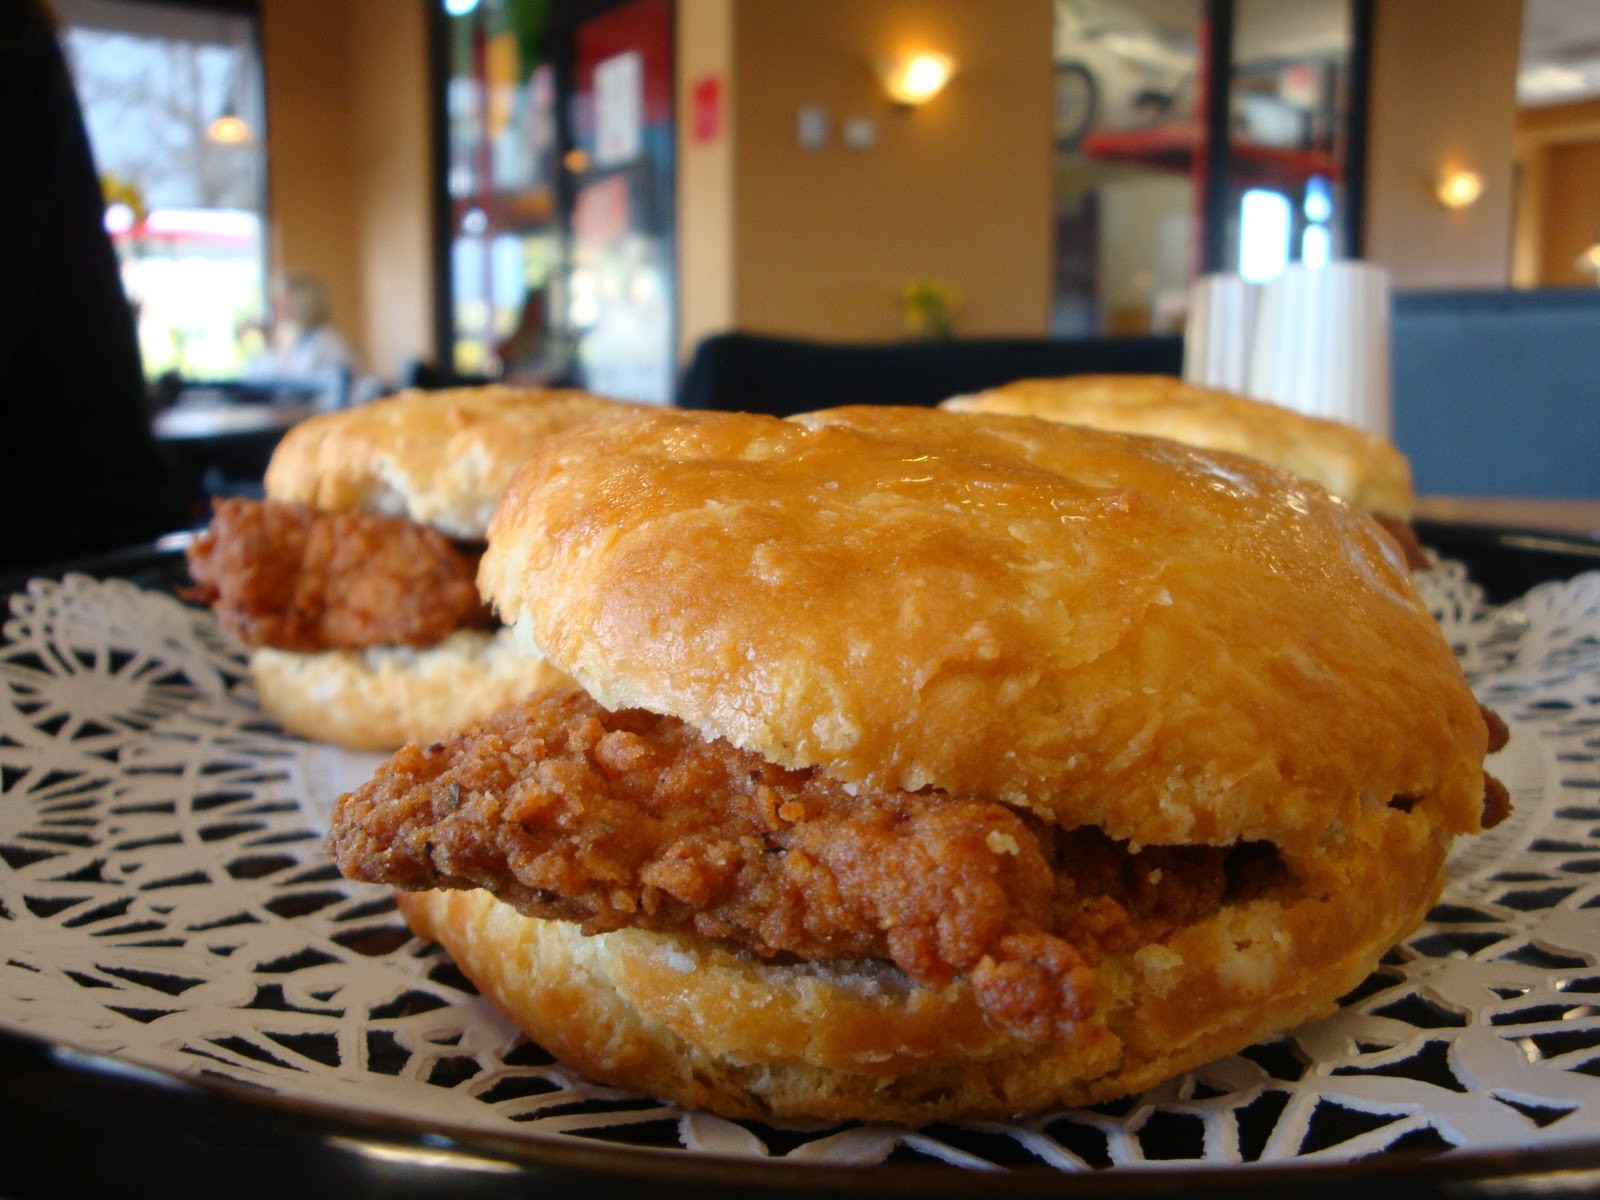 the hand breaded spicy chicken biscuit features a boneless chicken